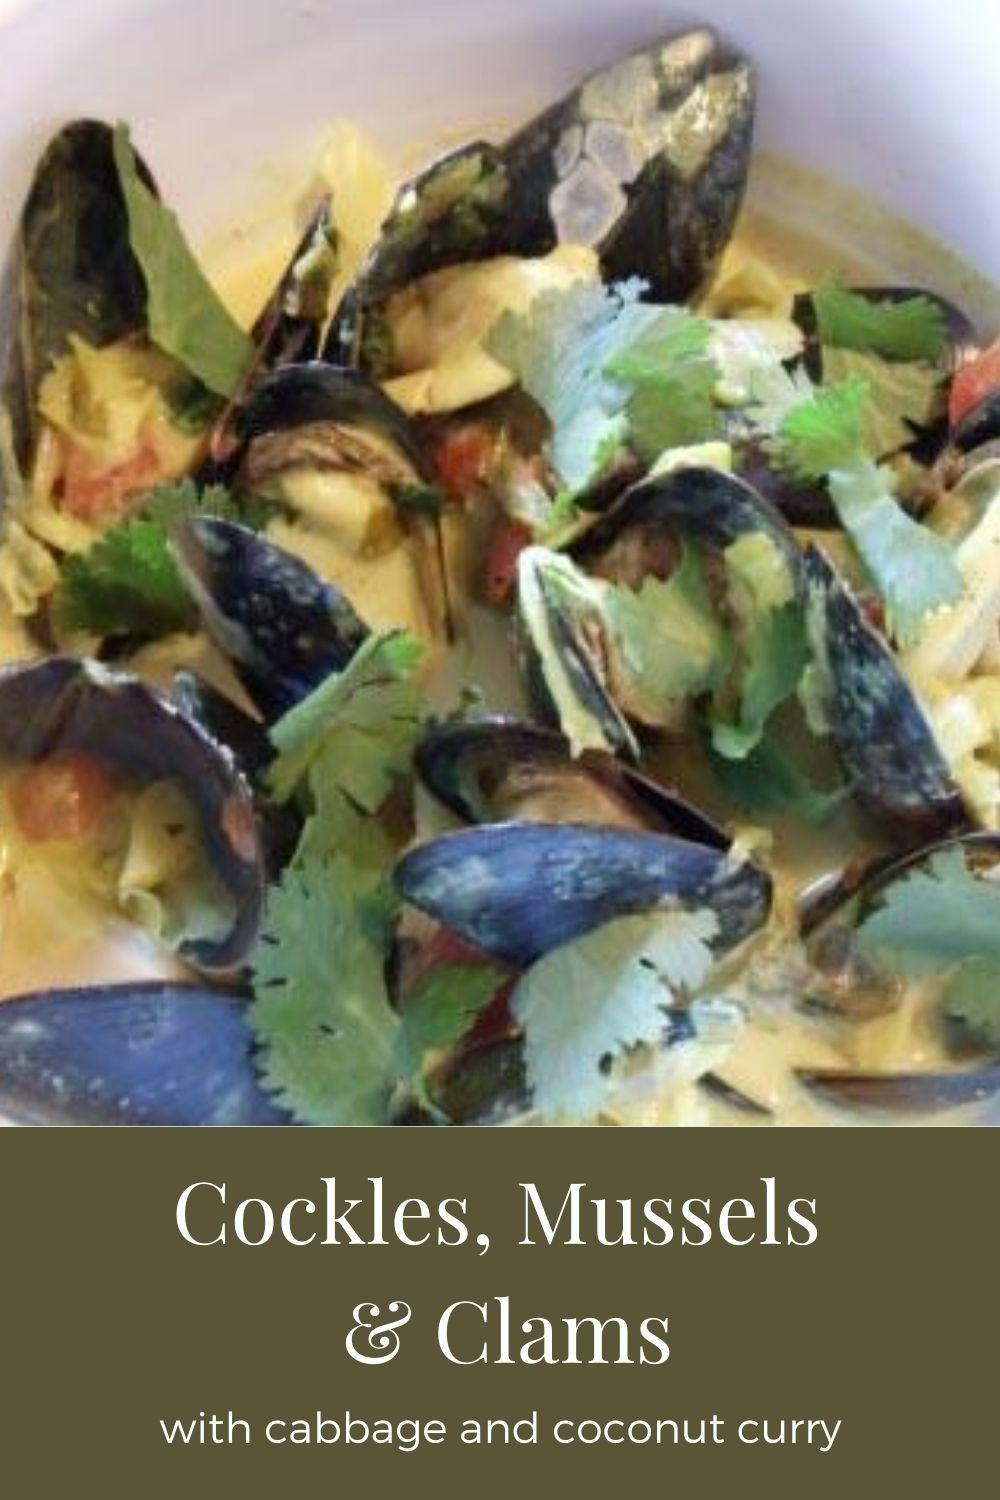 cockles, mussels and clams in coconut curry graphic